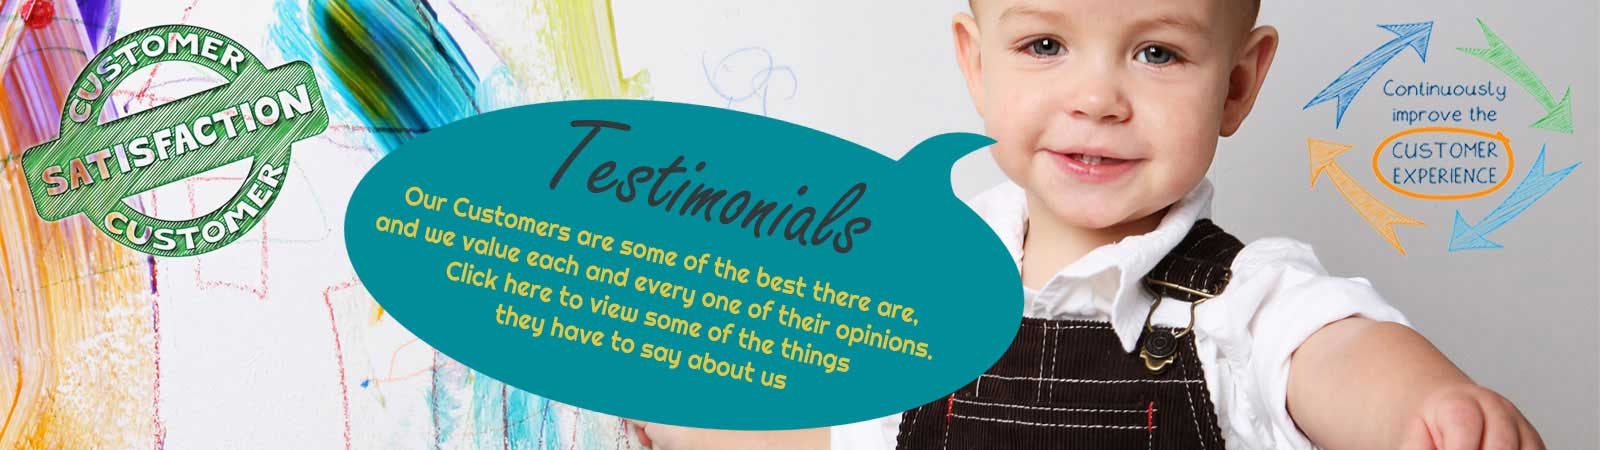 Smiley Kids Testimonials